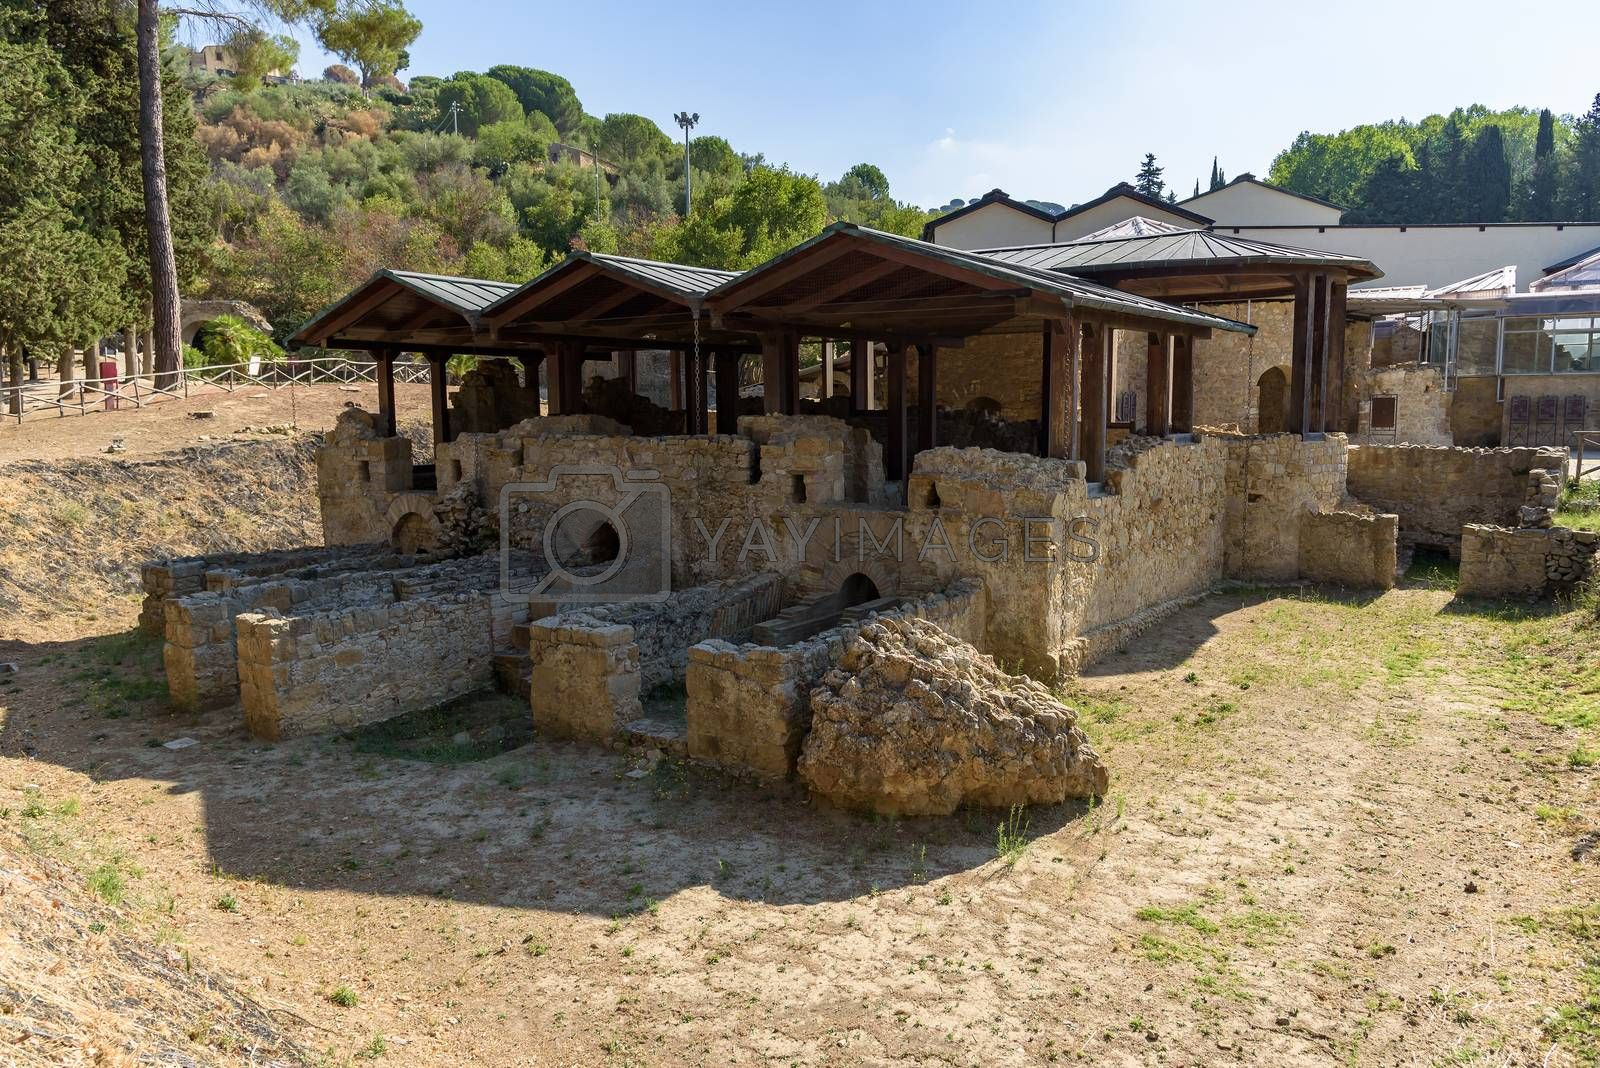 Royalty free image of Ruins of the ancient Villa del Casale on Sicily, Italy by mkos83